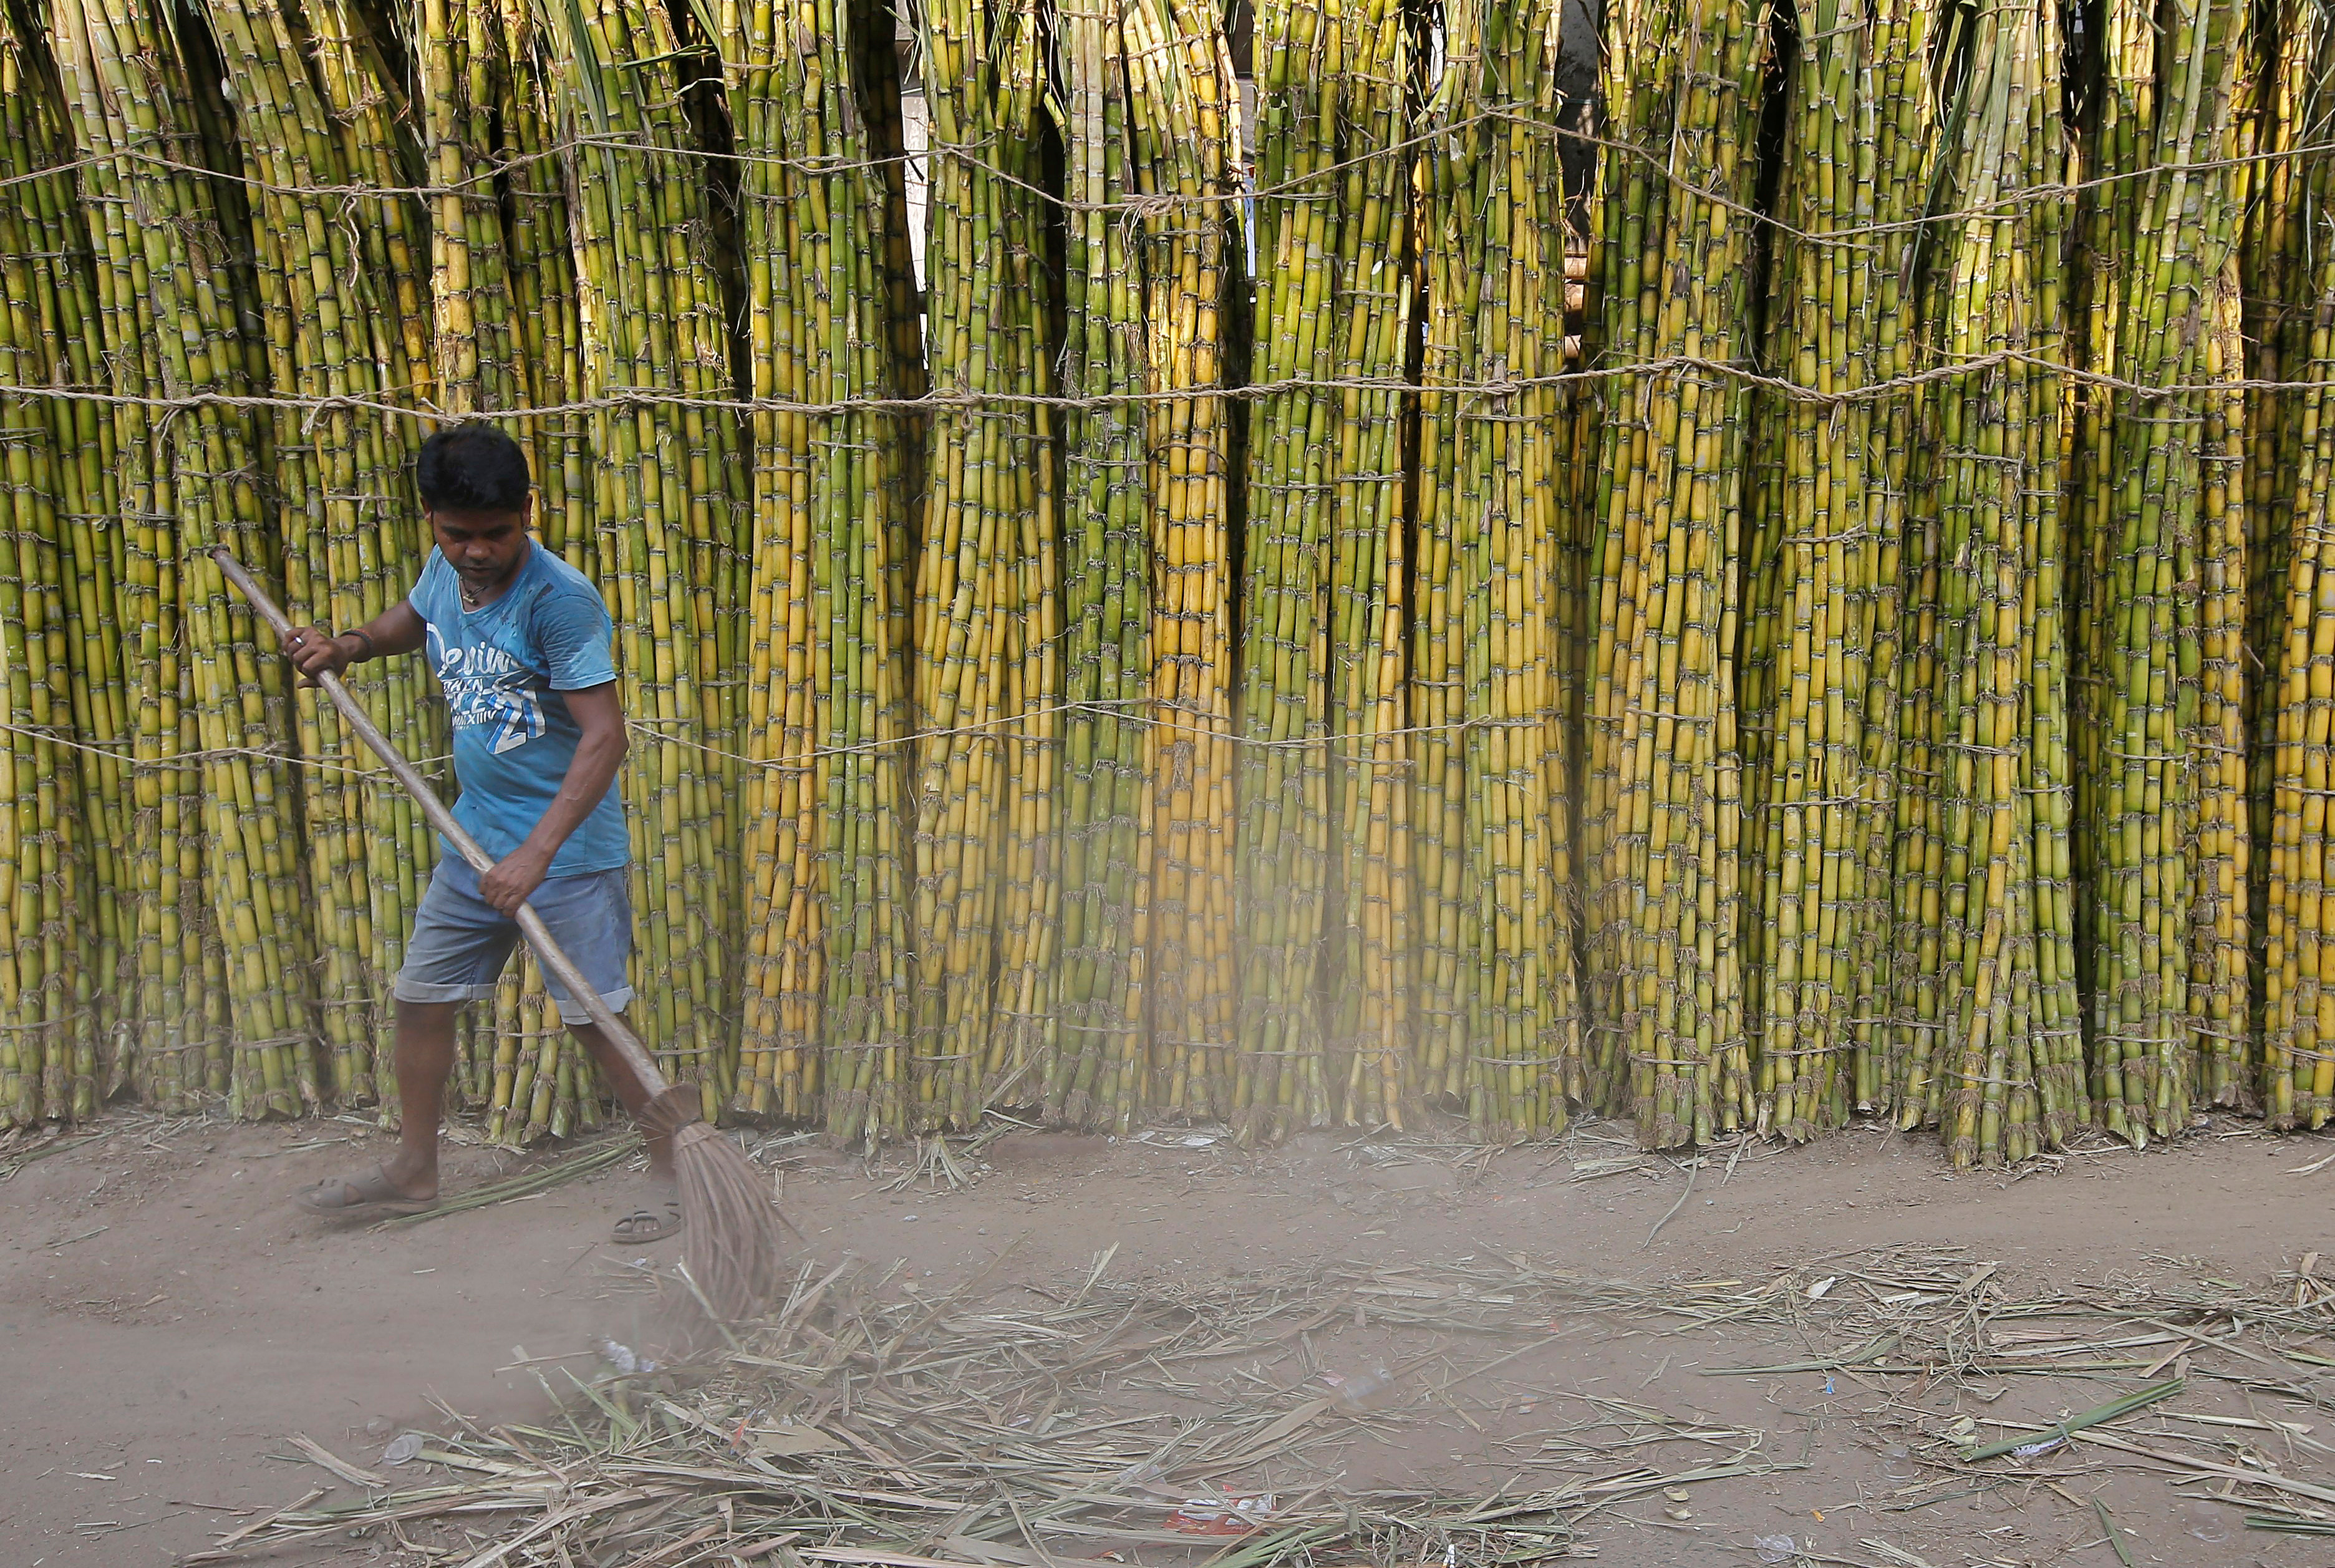 A sweeper cleans a road in front of sugarcane displayed for sale at a wholesale market in Kolkata, India, October 9, 2018. REUTERS/Rupak De Chowdhuri/Files